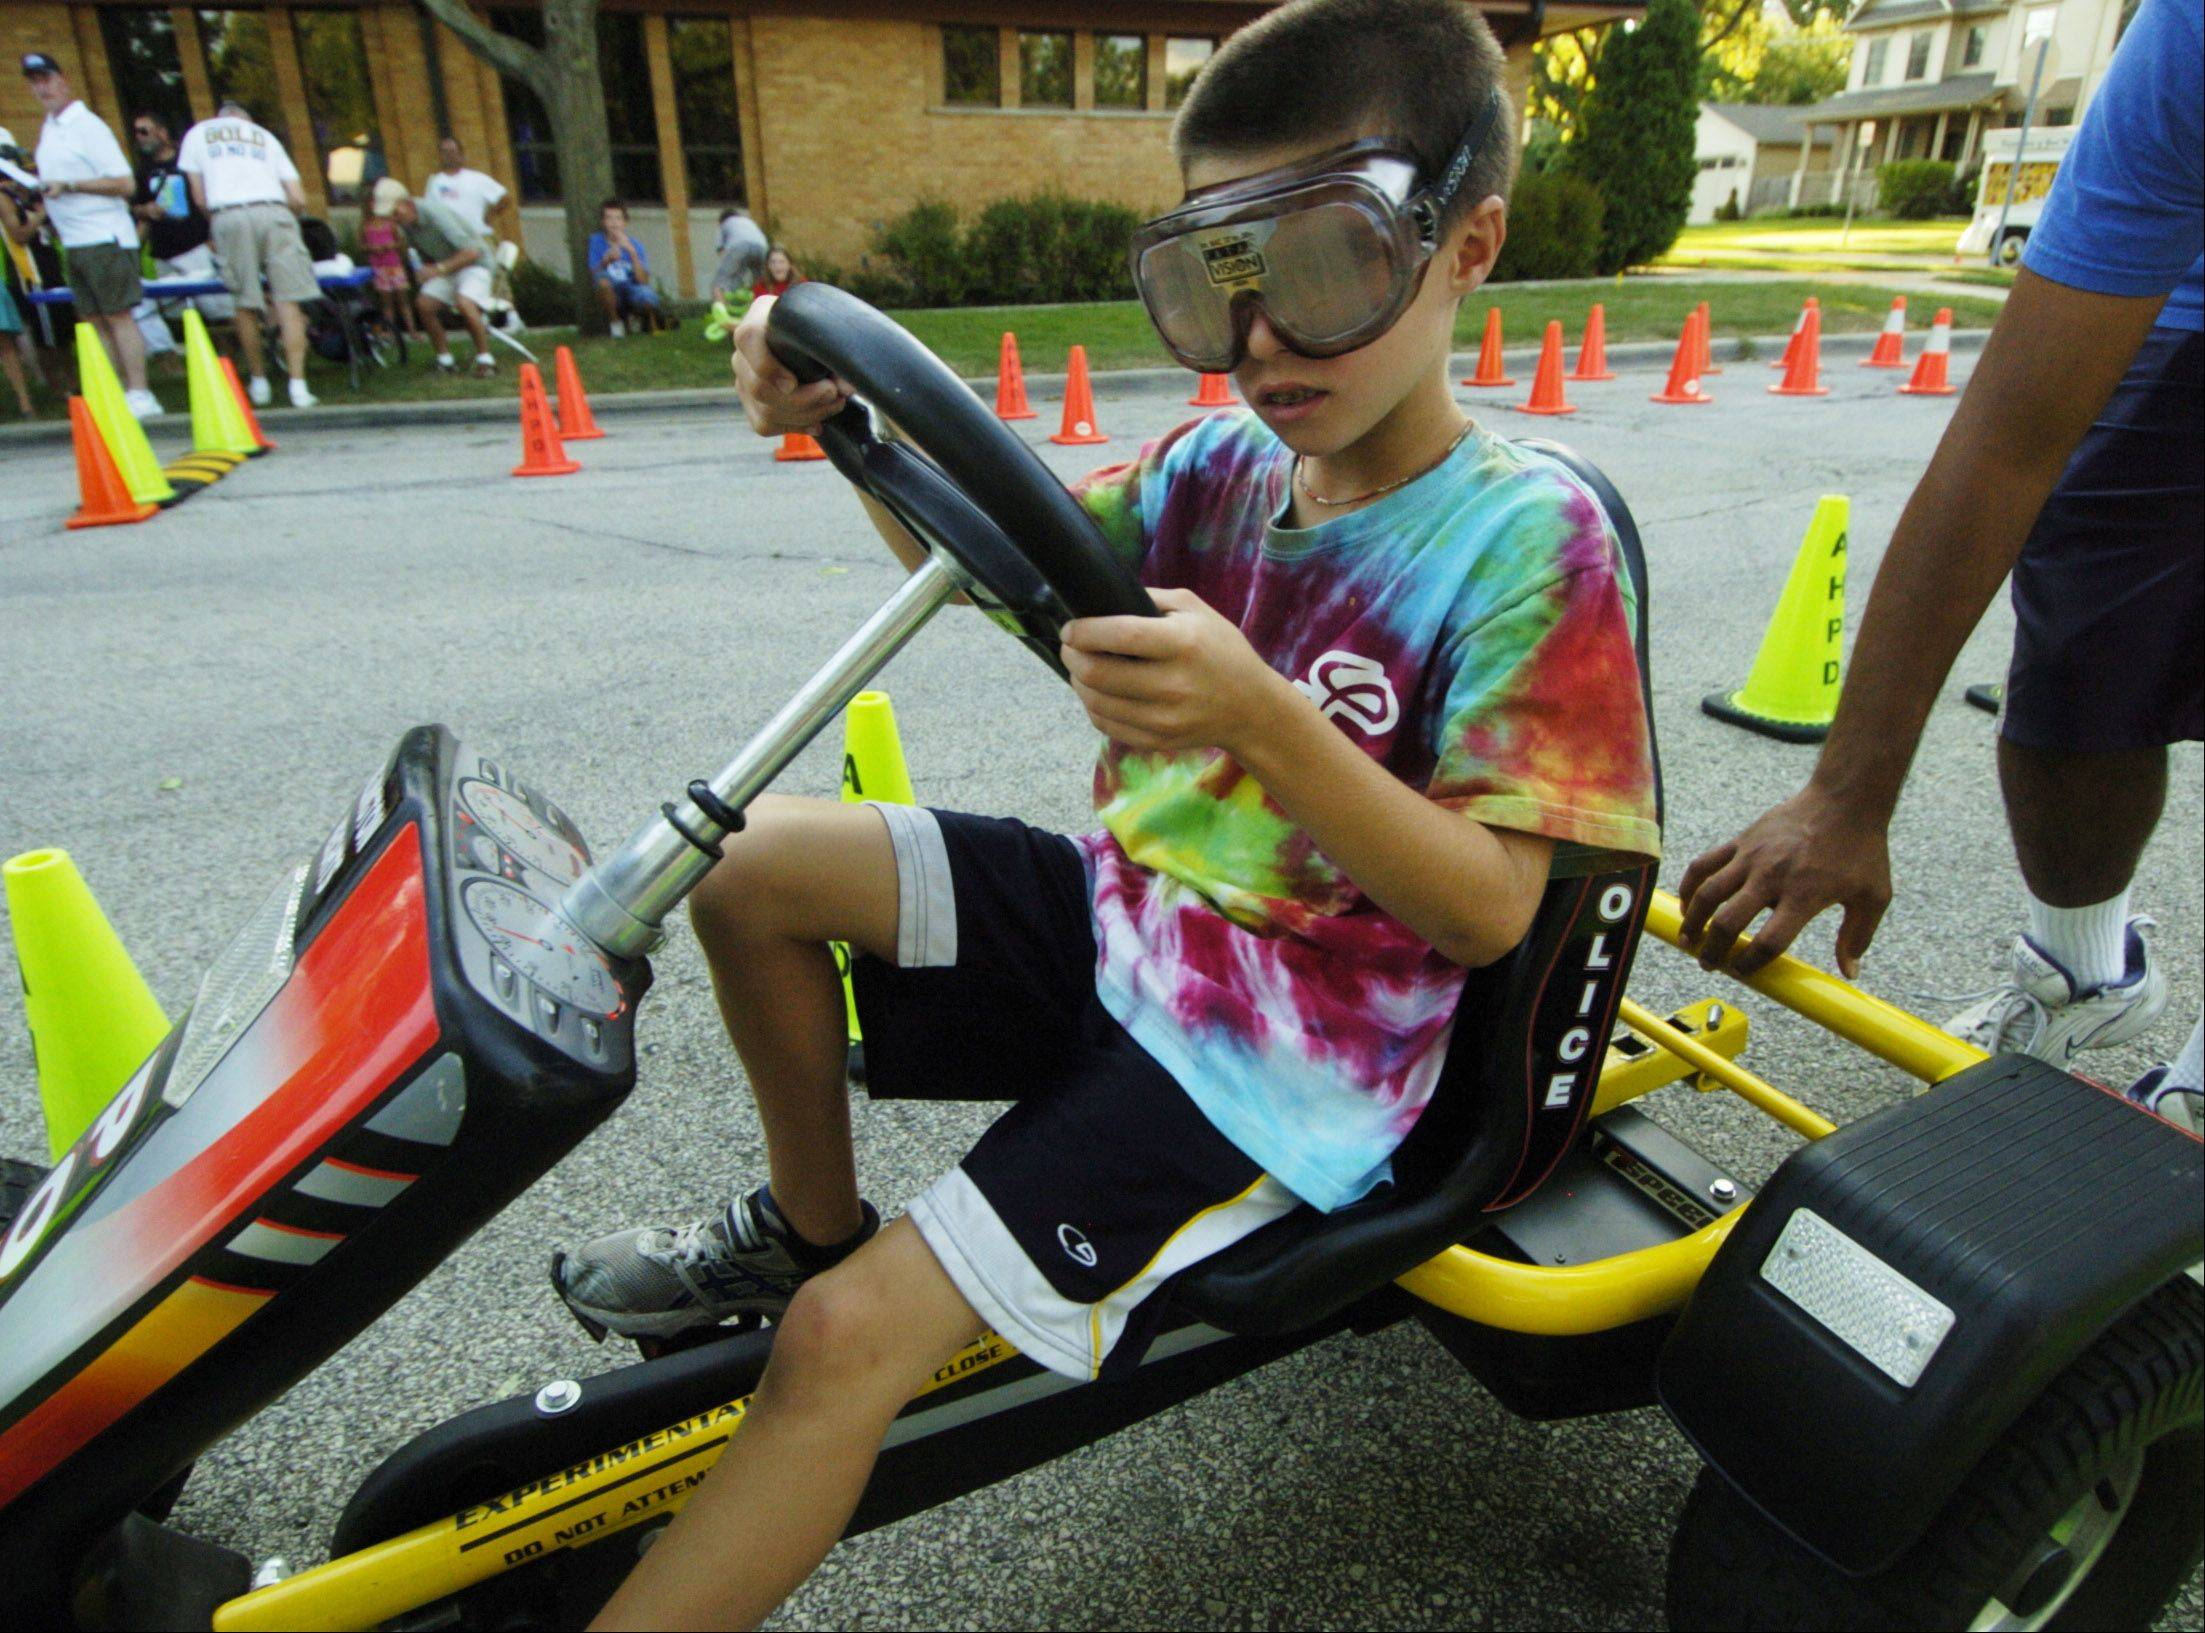 Grayson Hill, 8, of Arlington Heights drives a pedal car while wearing goggles which simulate impairment during Tuesday's National Night Out at North School Park in Arlington Heights.